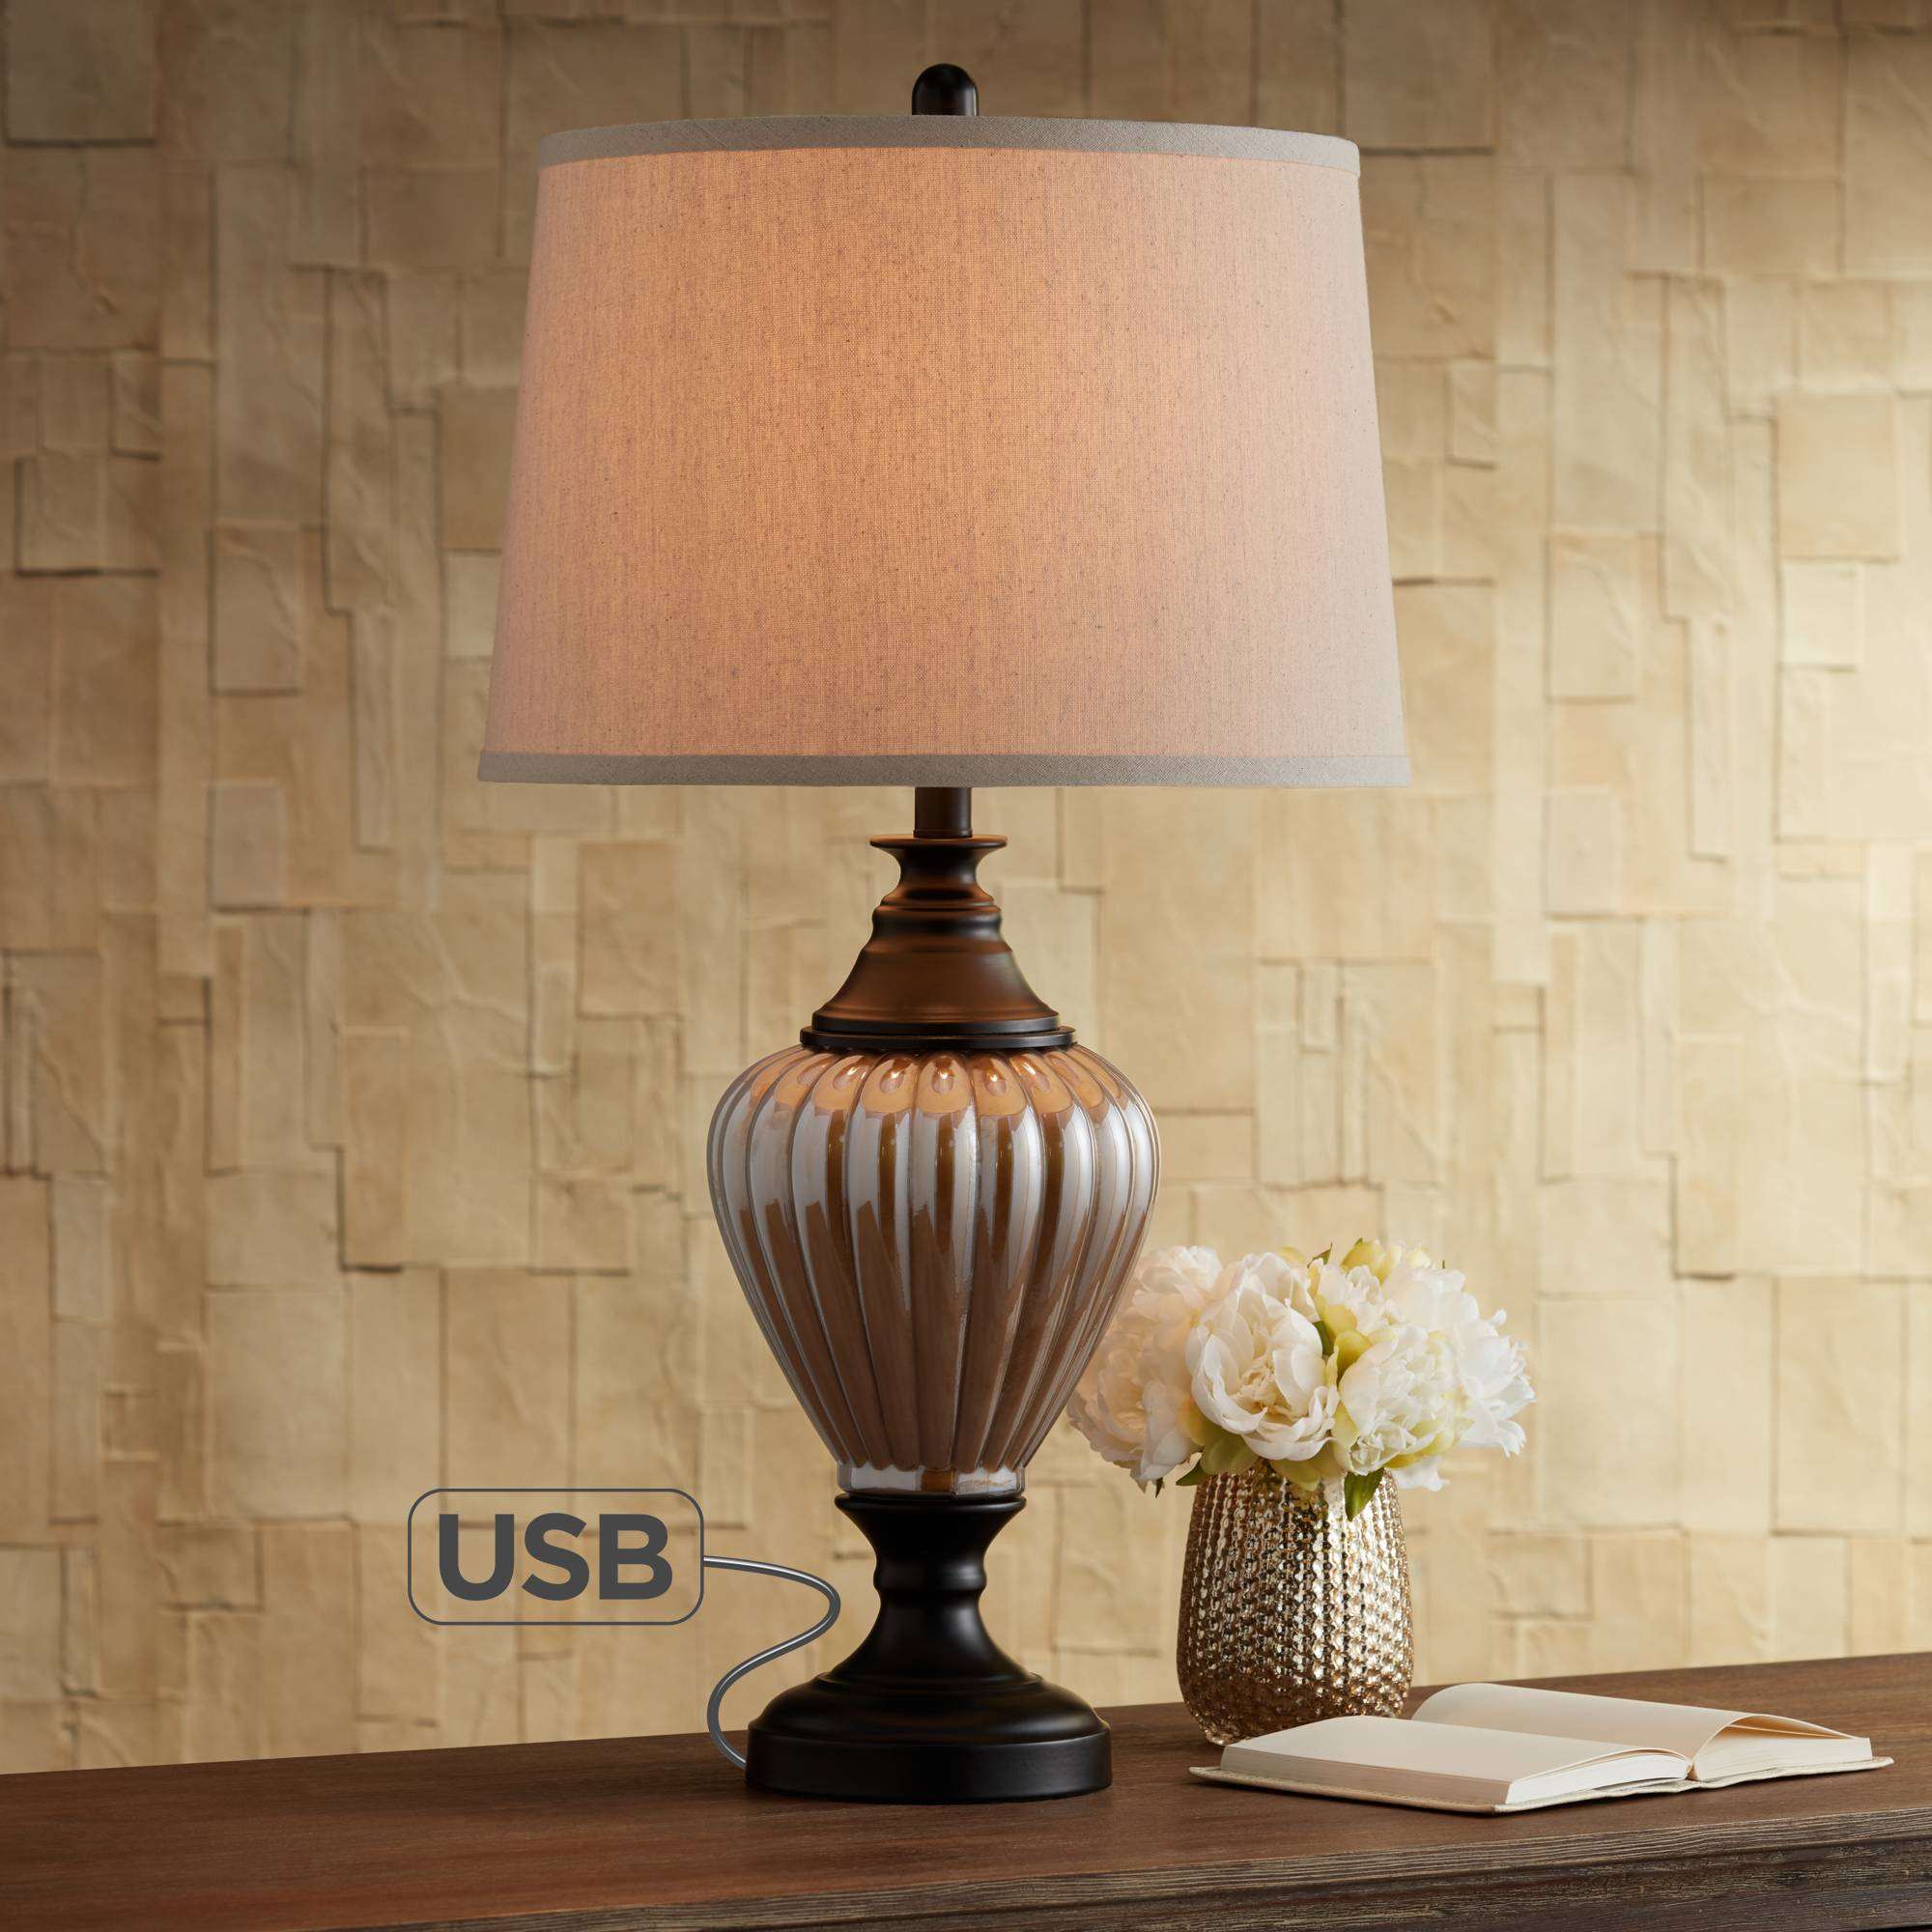 traditional table lamp with usb glass and black metal for